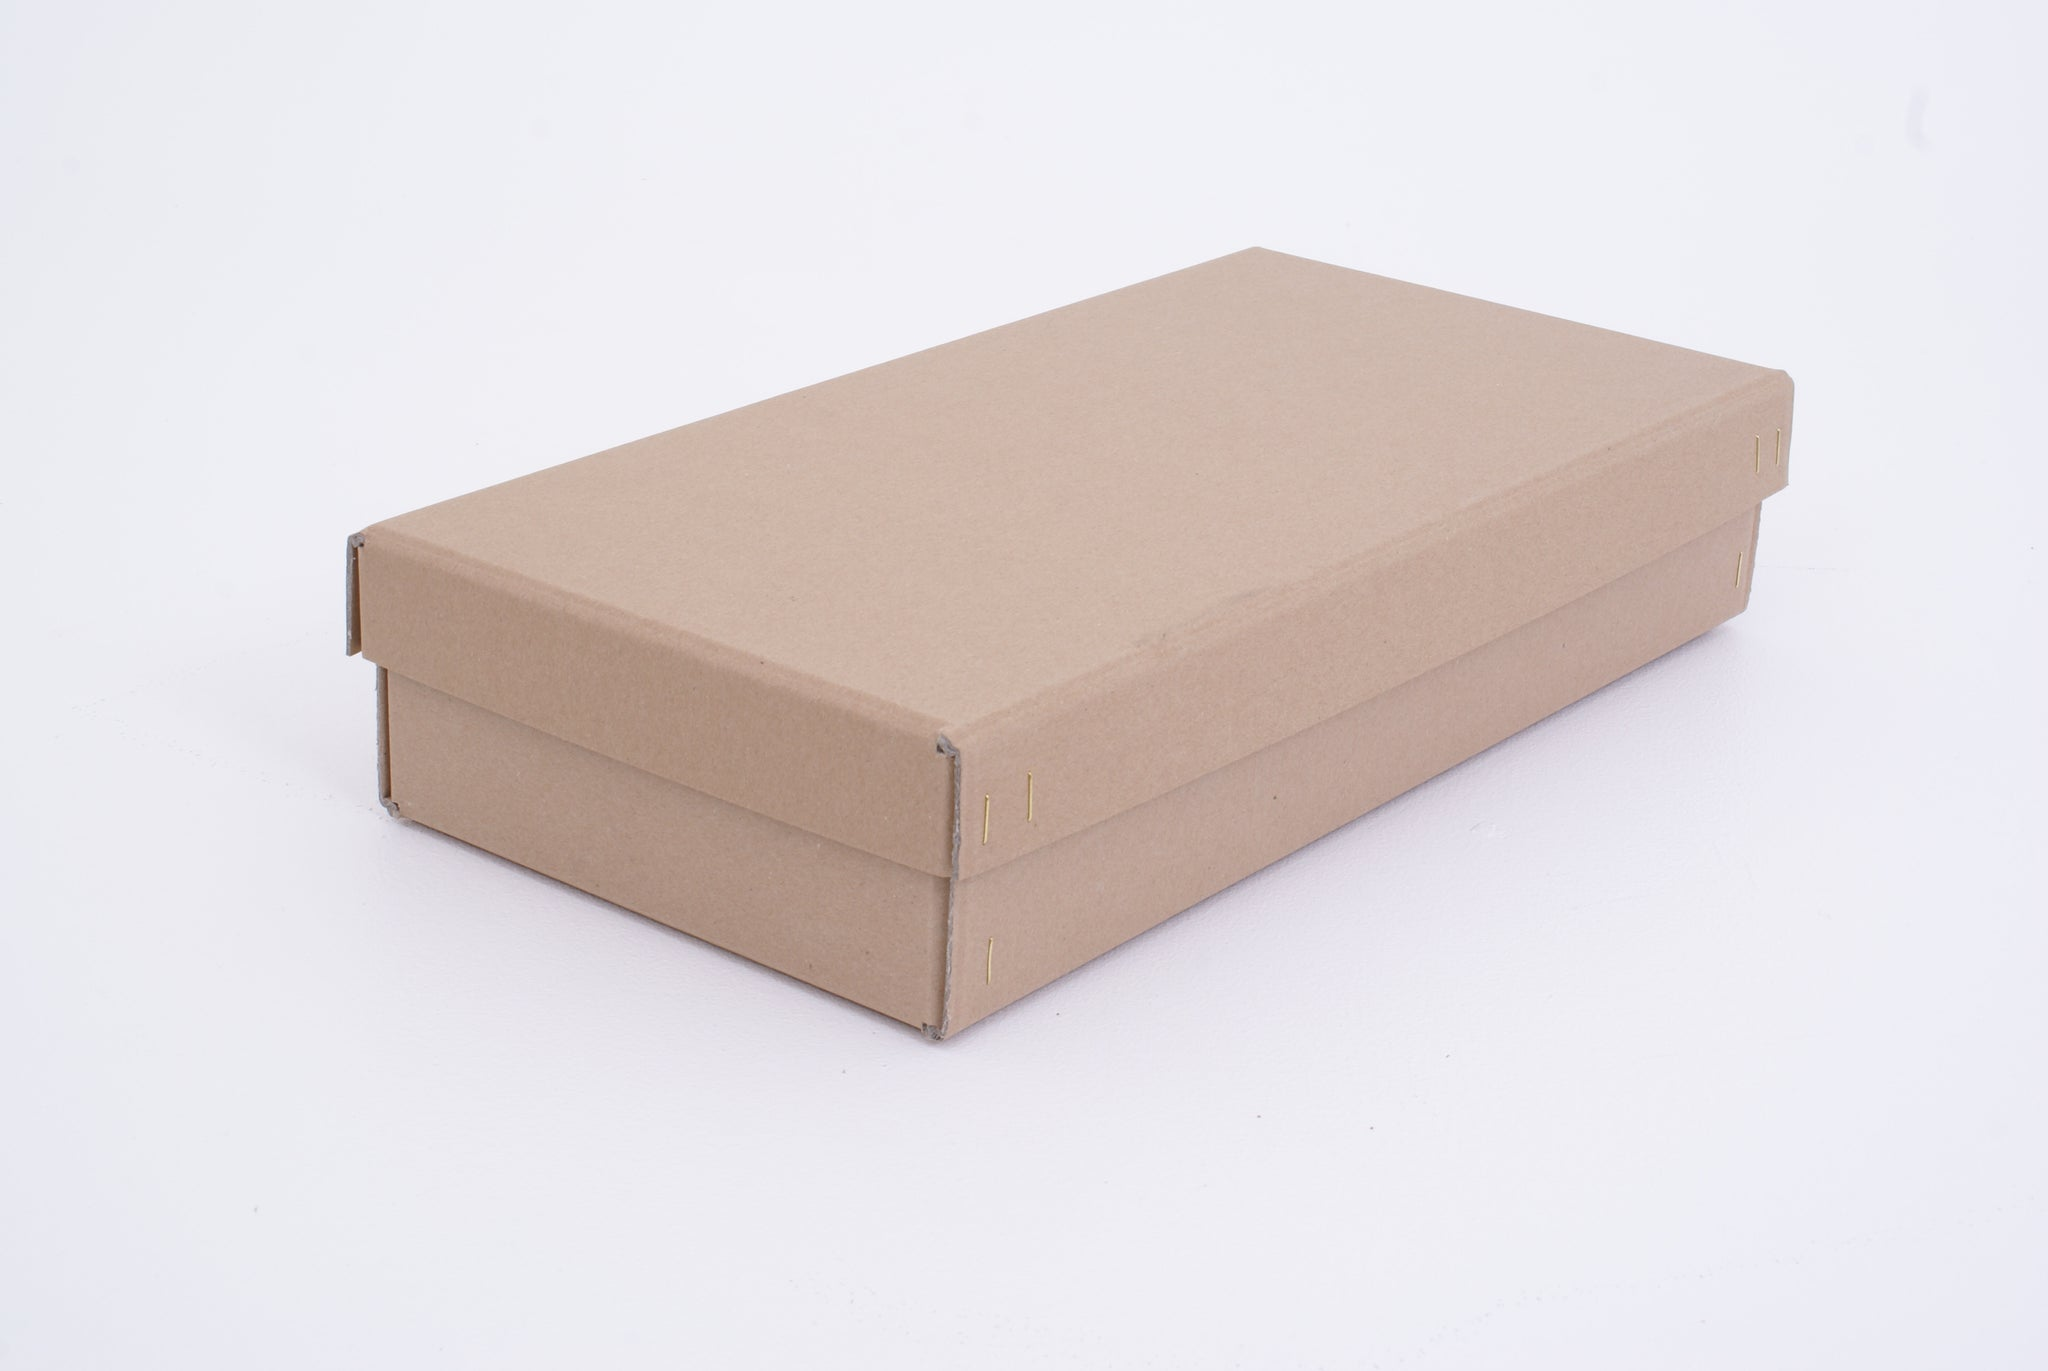 Wire Stitched Box - Shallow Depth Lid (WS-584)